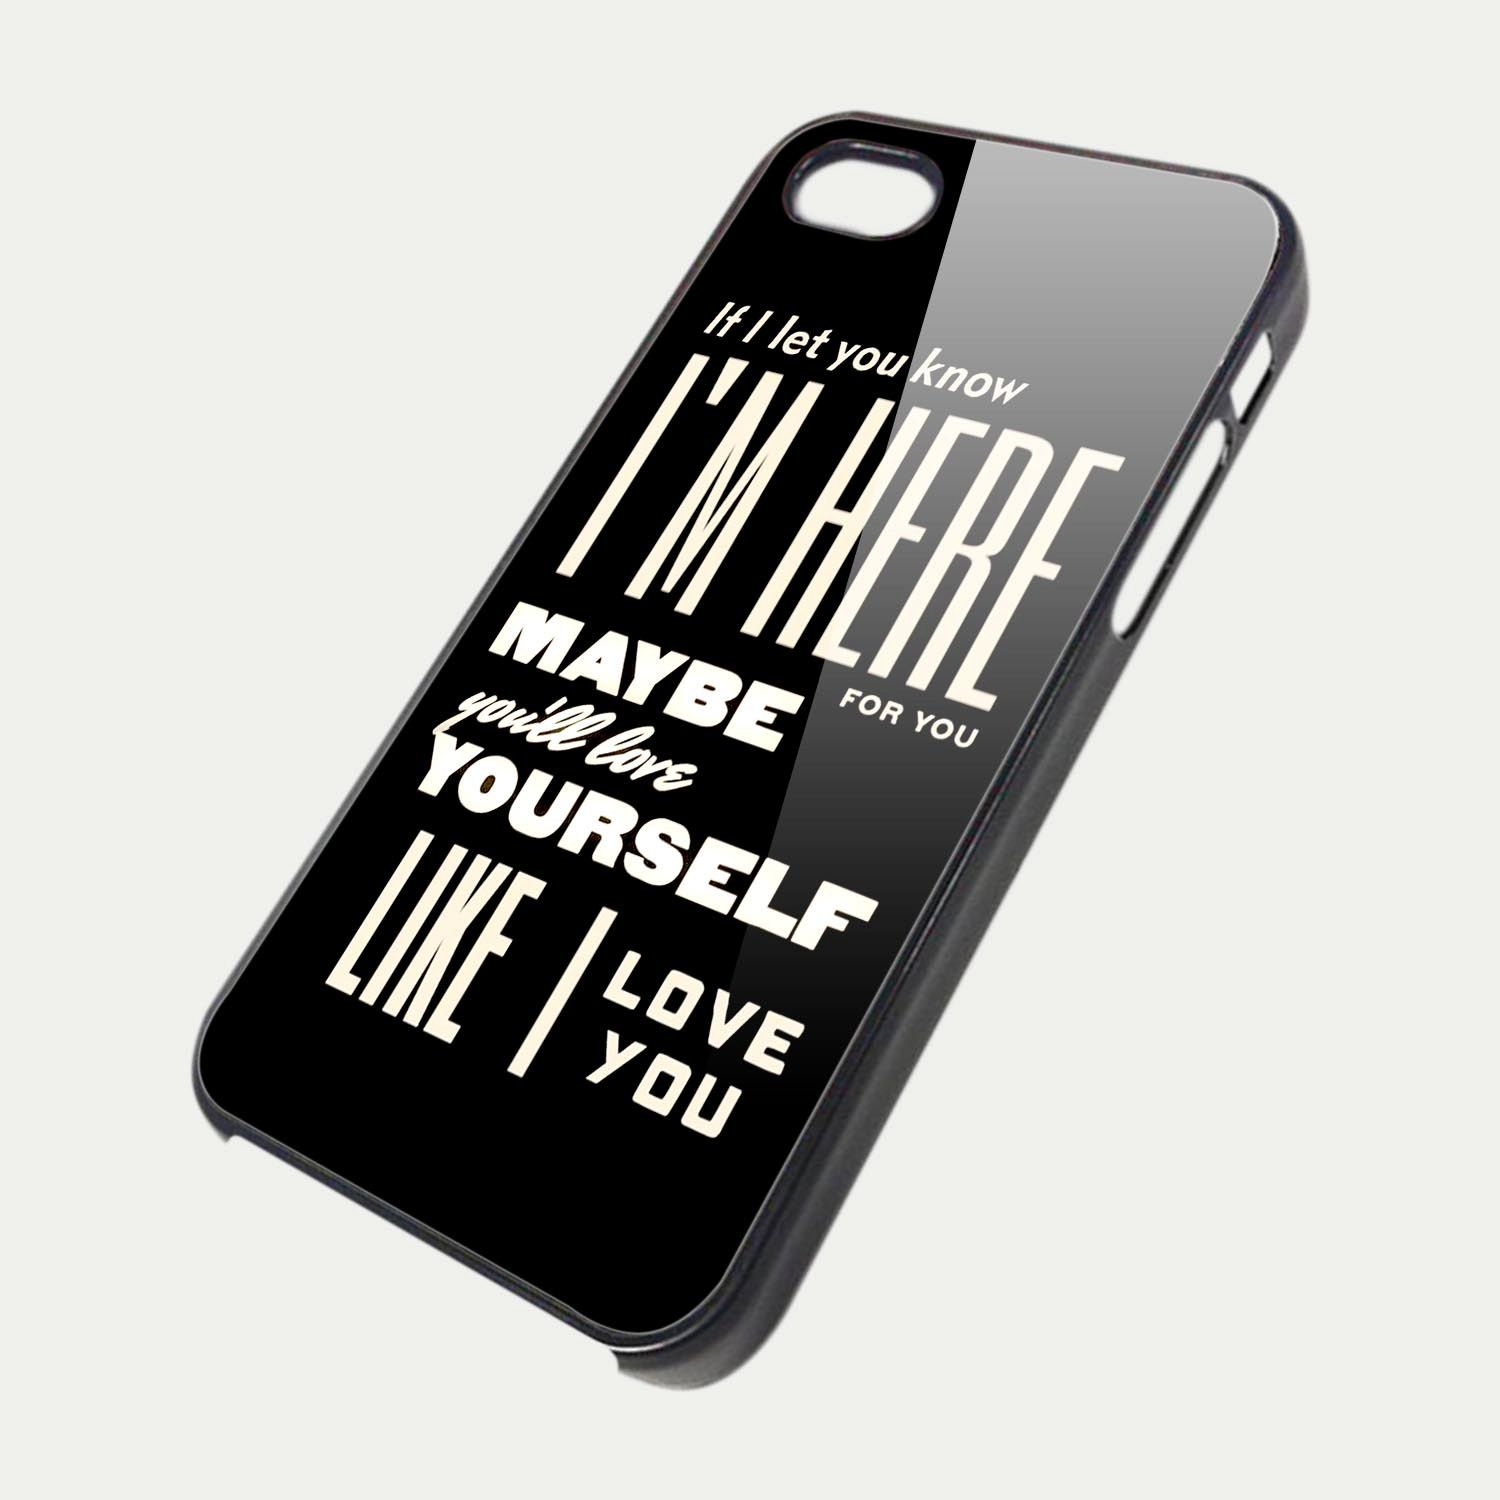 one direction quote tm00 iphone 5 case iphone 4 4s. Black Bedroom Furniture Sets. Home Design Ideas